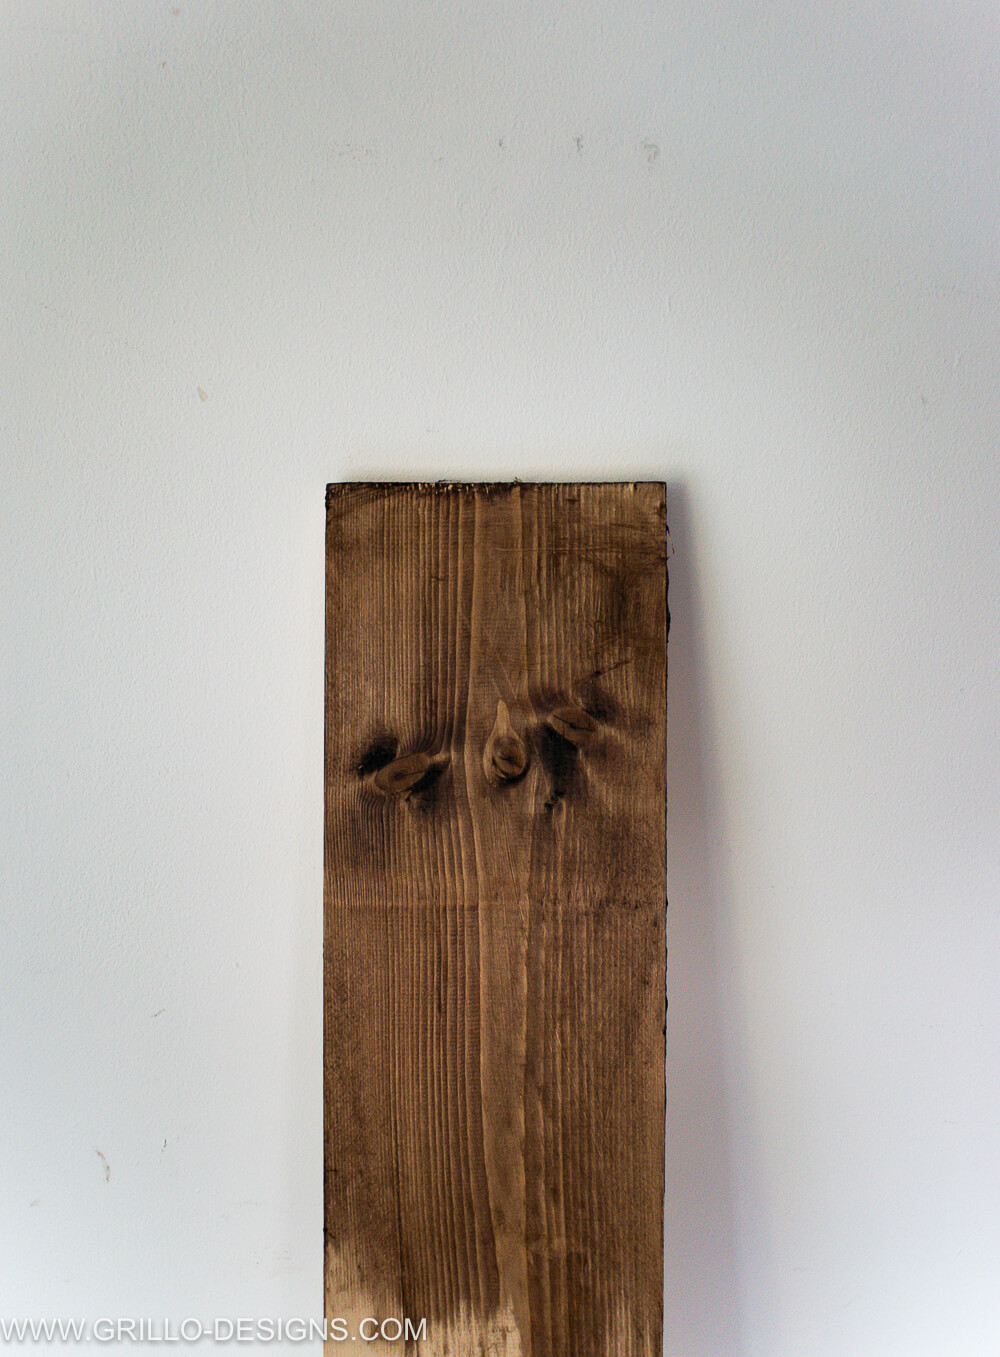 Apply wax to shelves to make diy shelves and wall desk / grillo designs